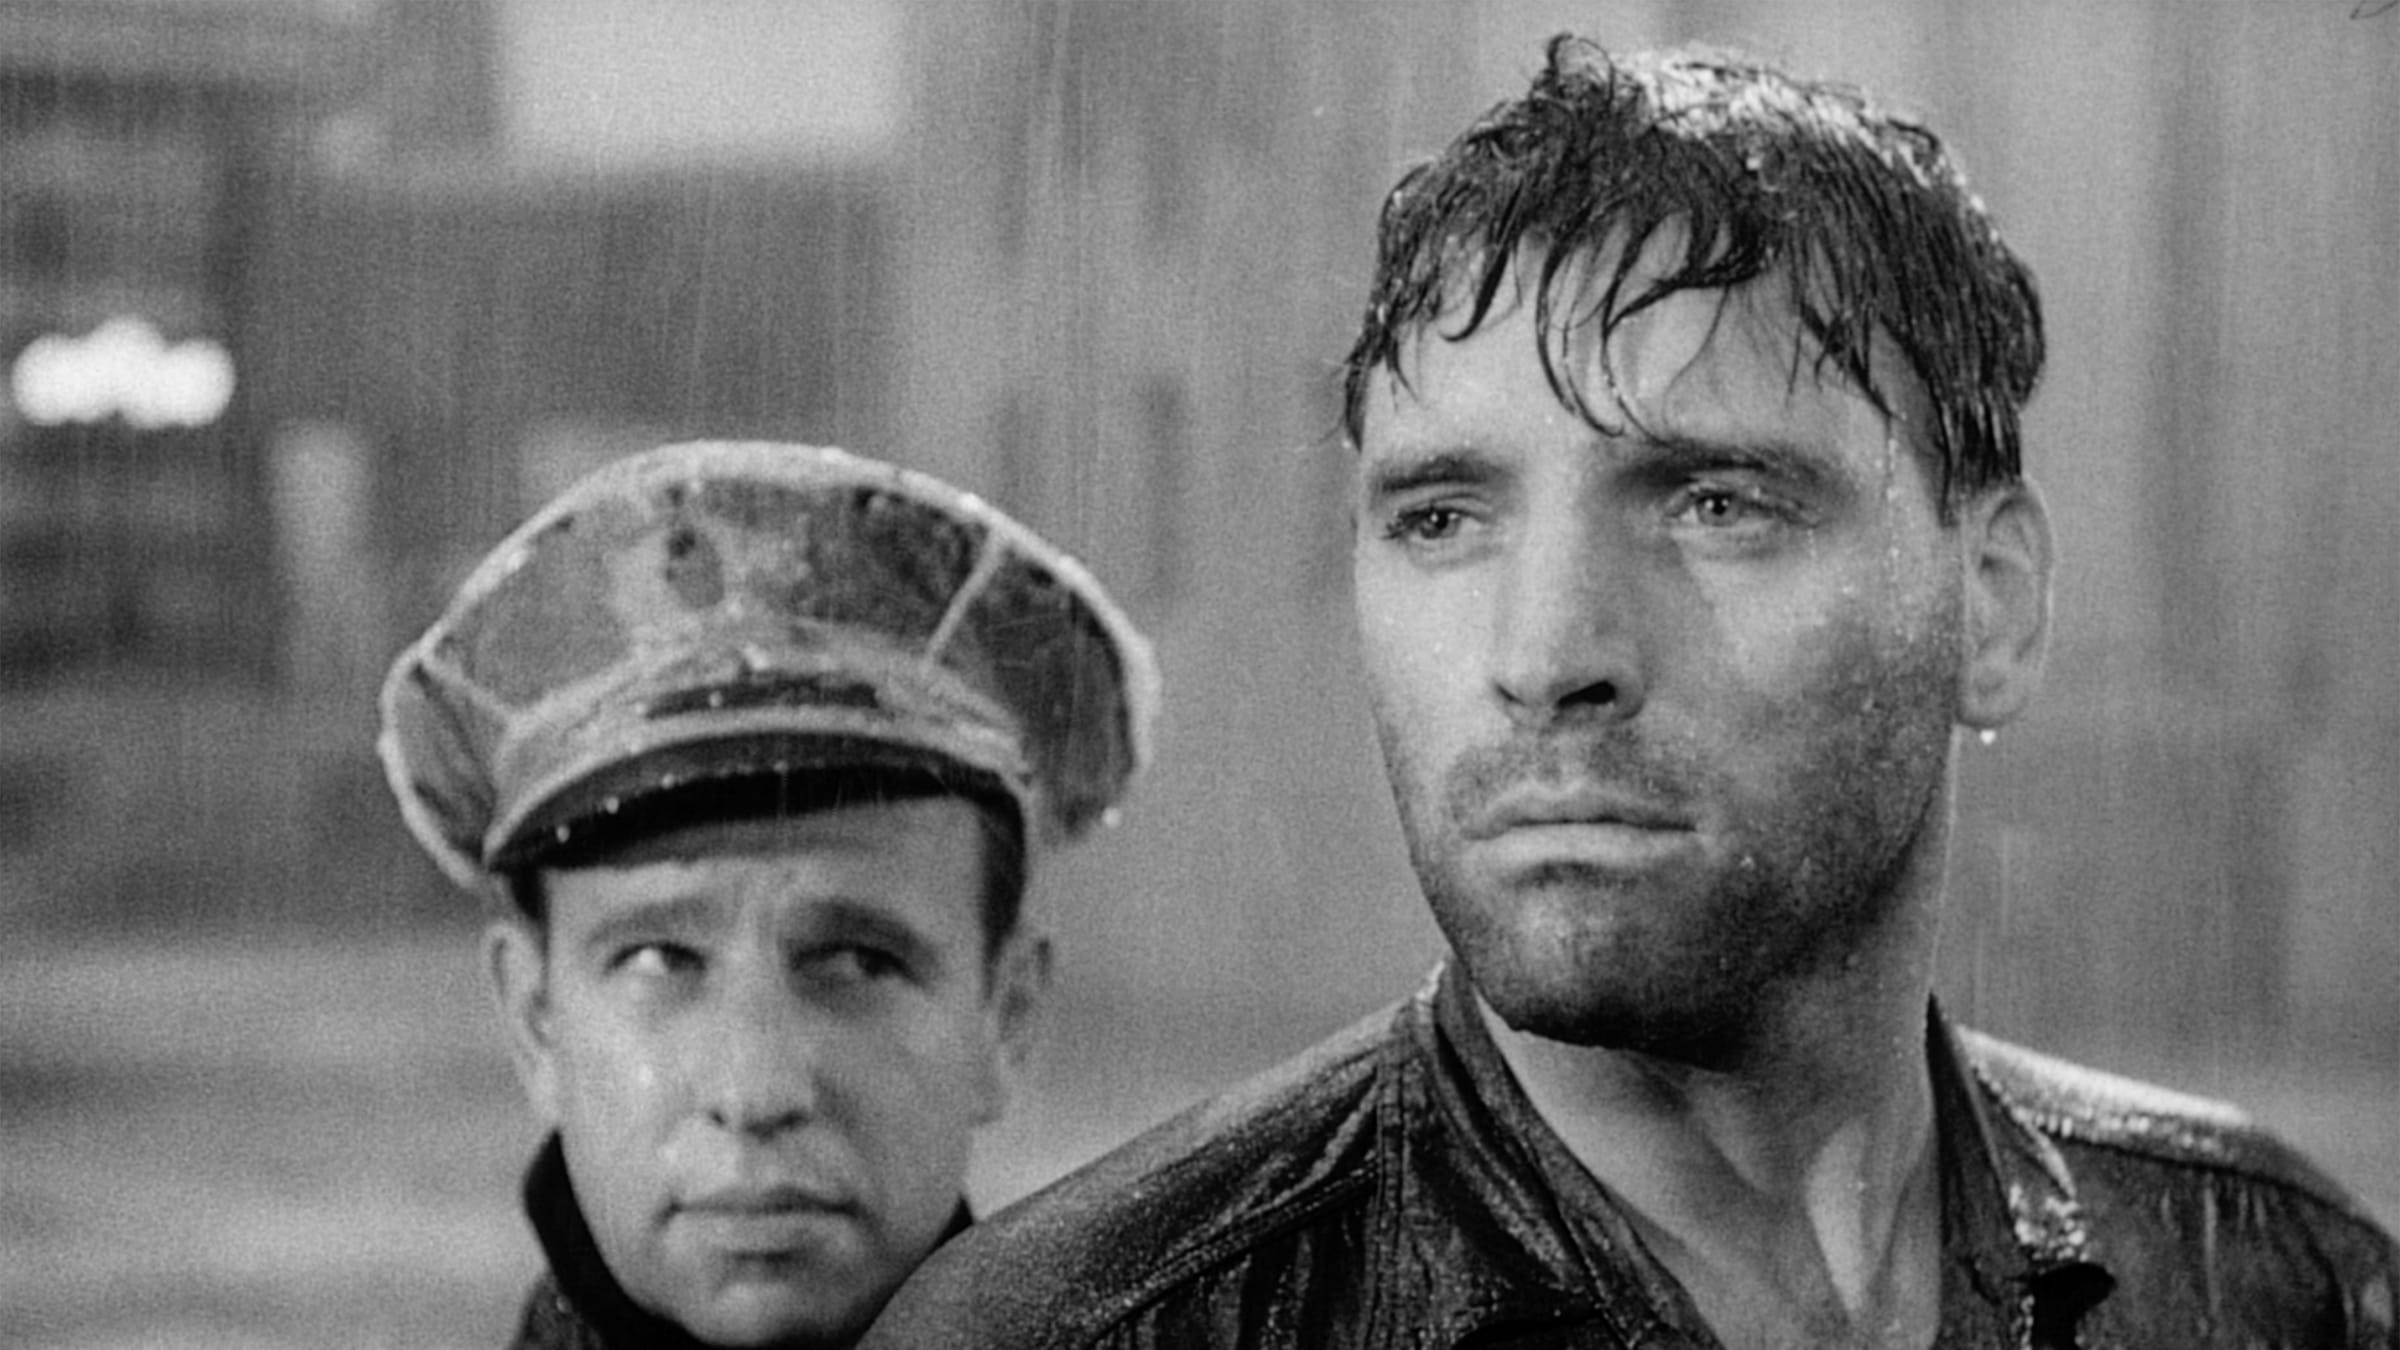 The Criterion Shelf: Starring Burt Lancaster